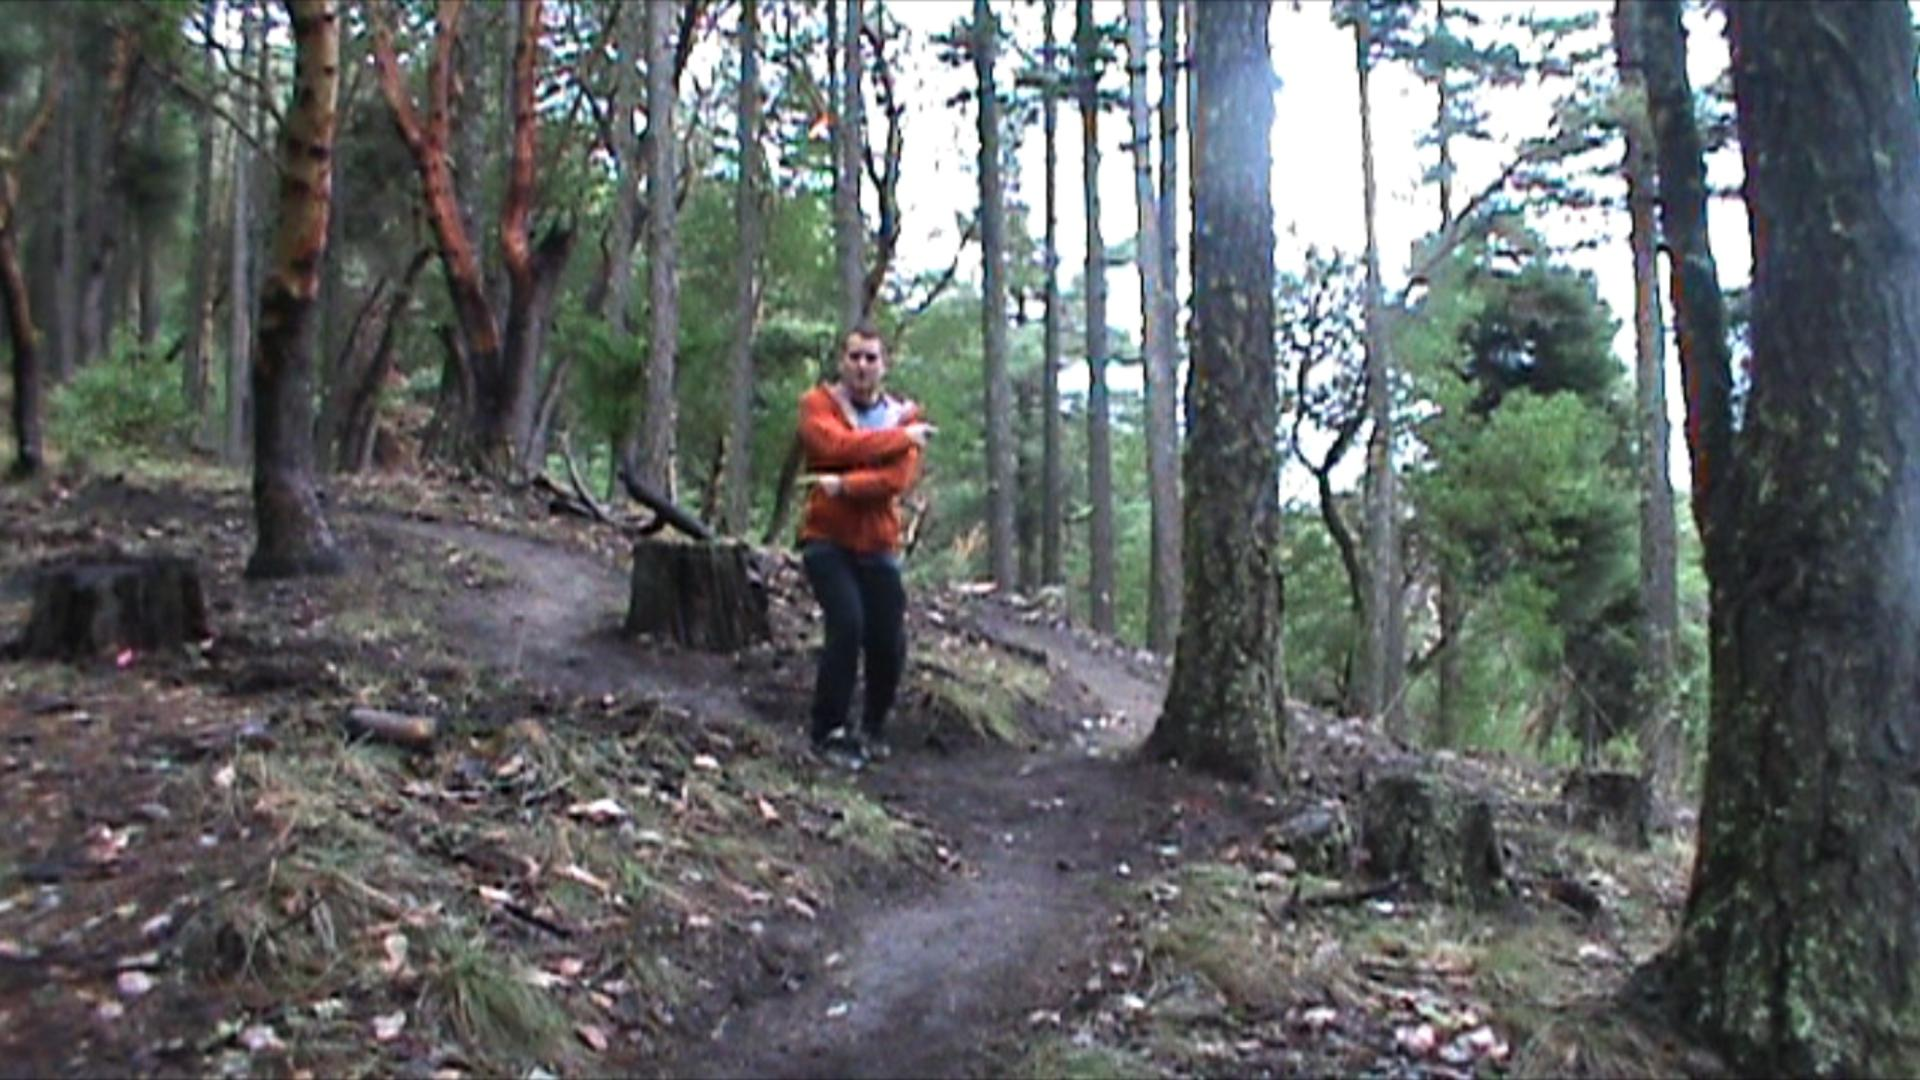 grouse creek buddhist single men Women in buddhism is a topic that can be approached from varied perspectives  including  when there is a talk about women and buddhism, i have noticed that  people often regard the topic as something new and different  they should not  be an emphasis on one at the expense of the other, for both are indispensable.